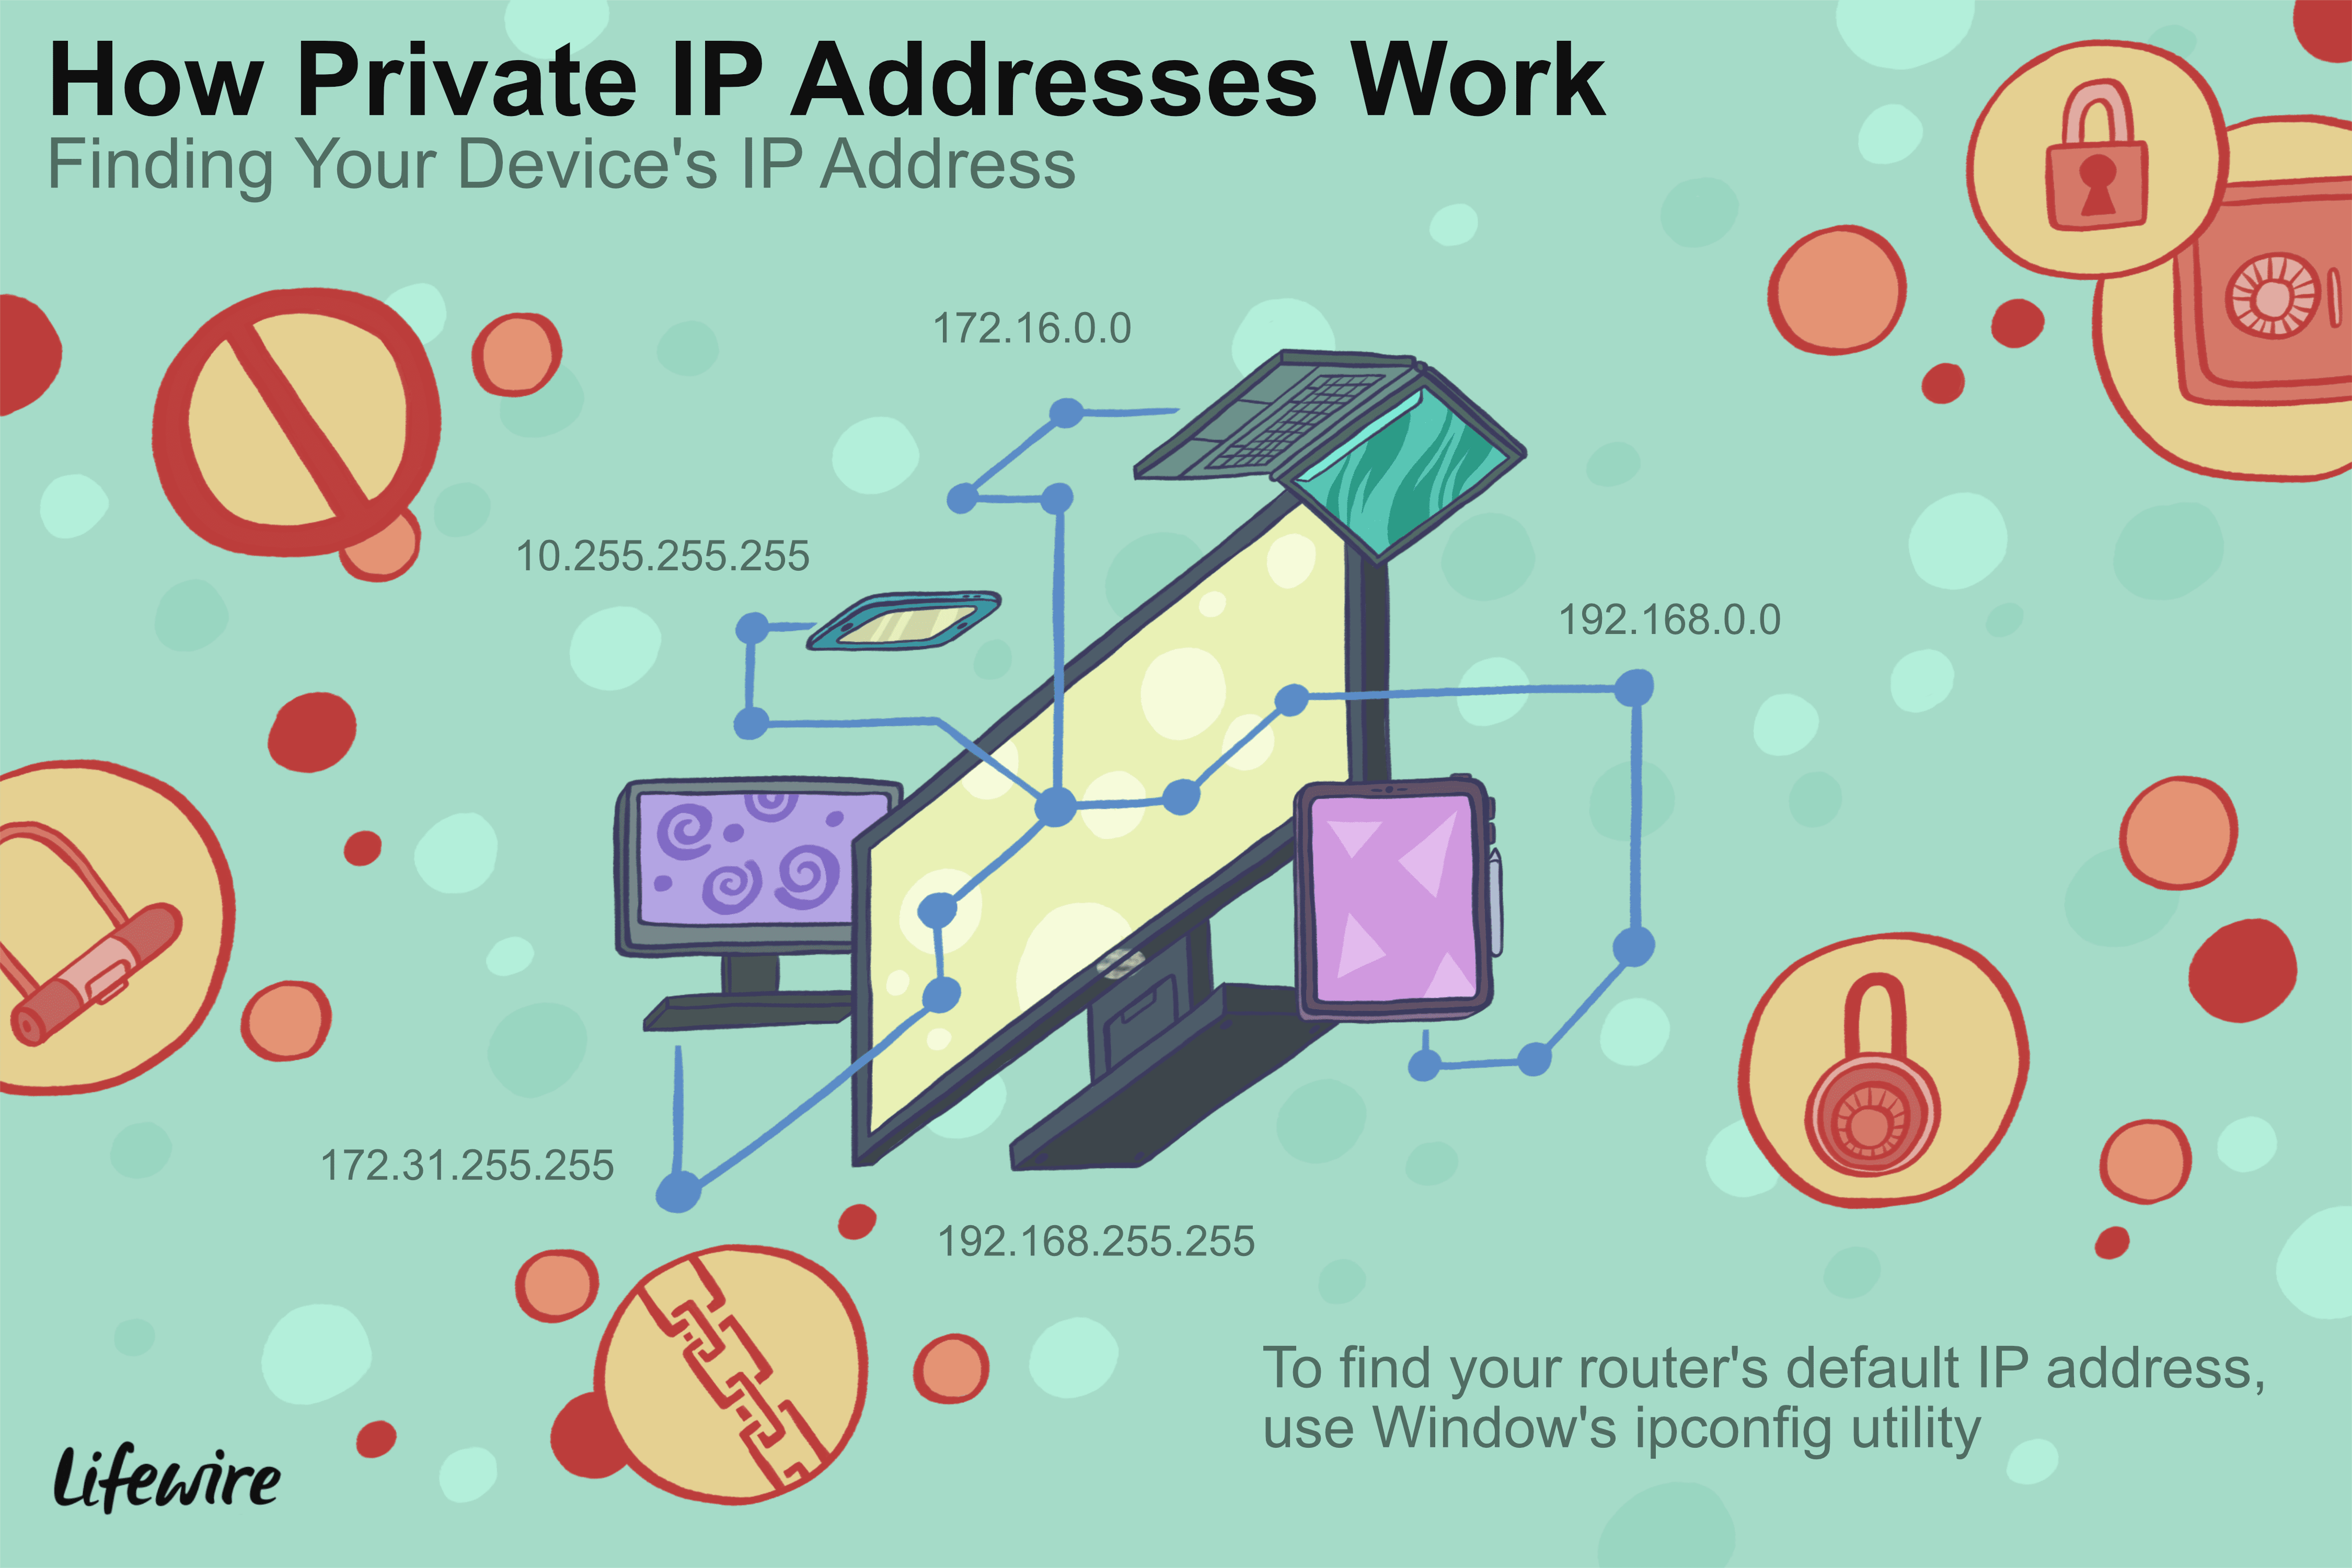 Illustration of how private IP addresses work